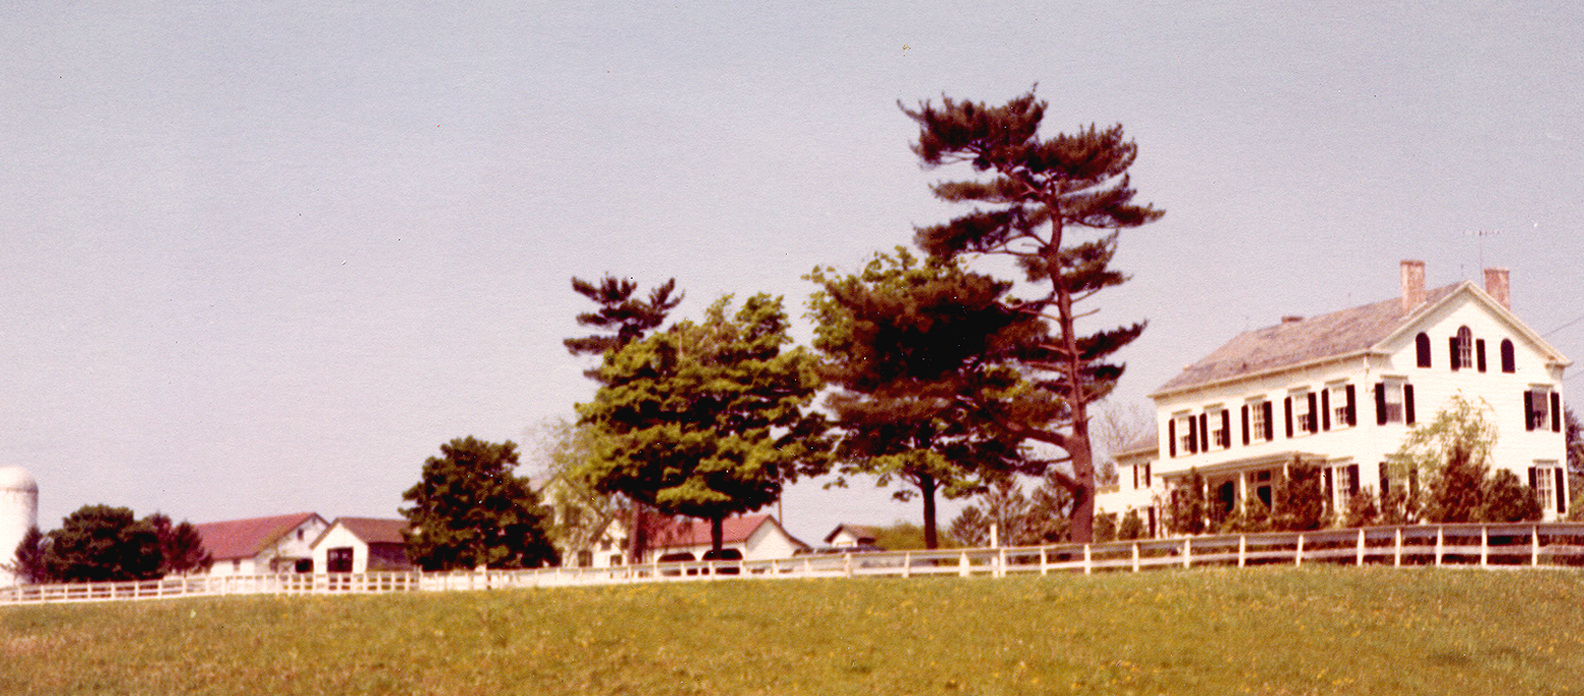 Voorhees Farm at Six Mile Run, 1968